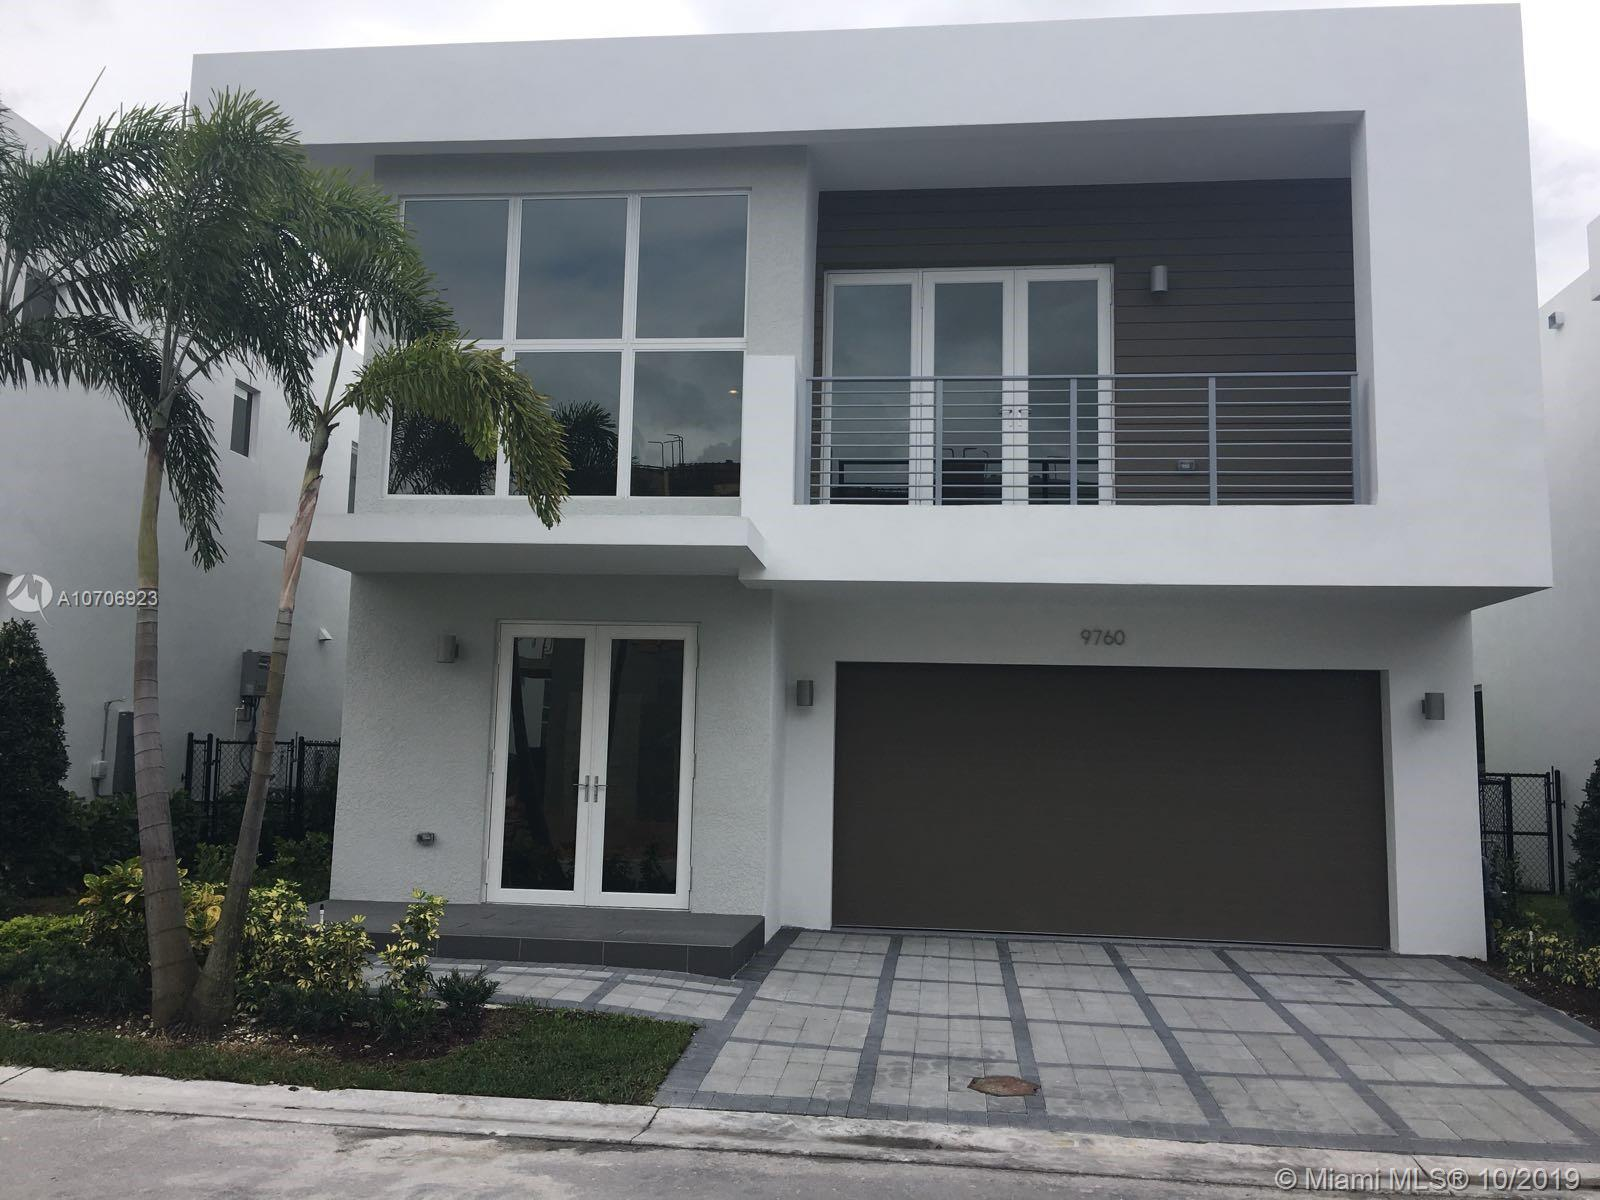 9760 NW 74th Ter  For Sale A10706923, FL